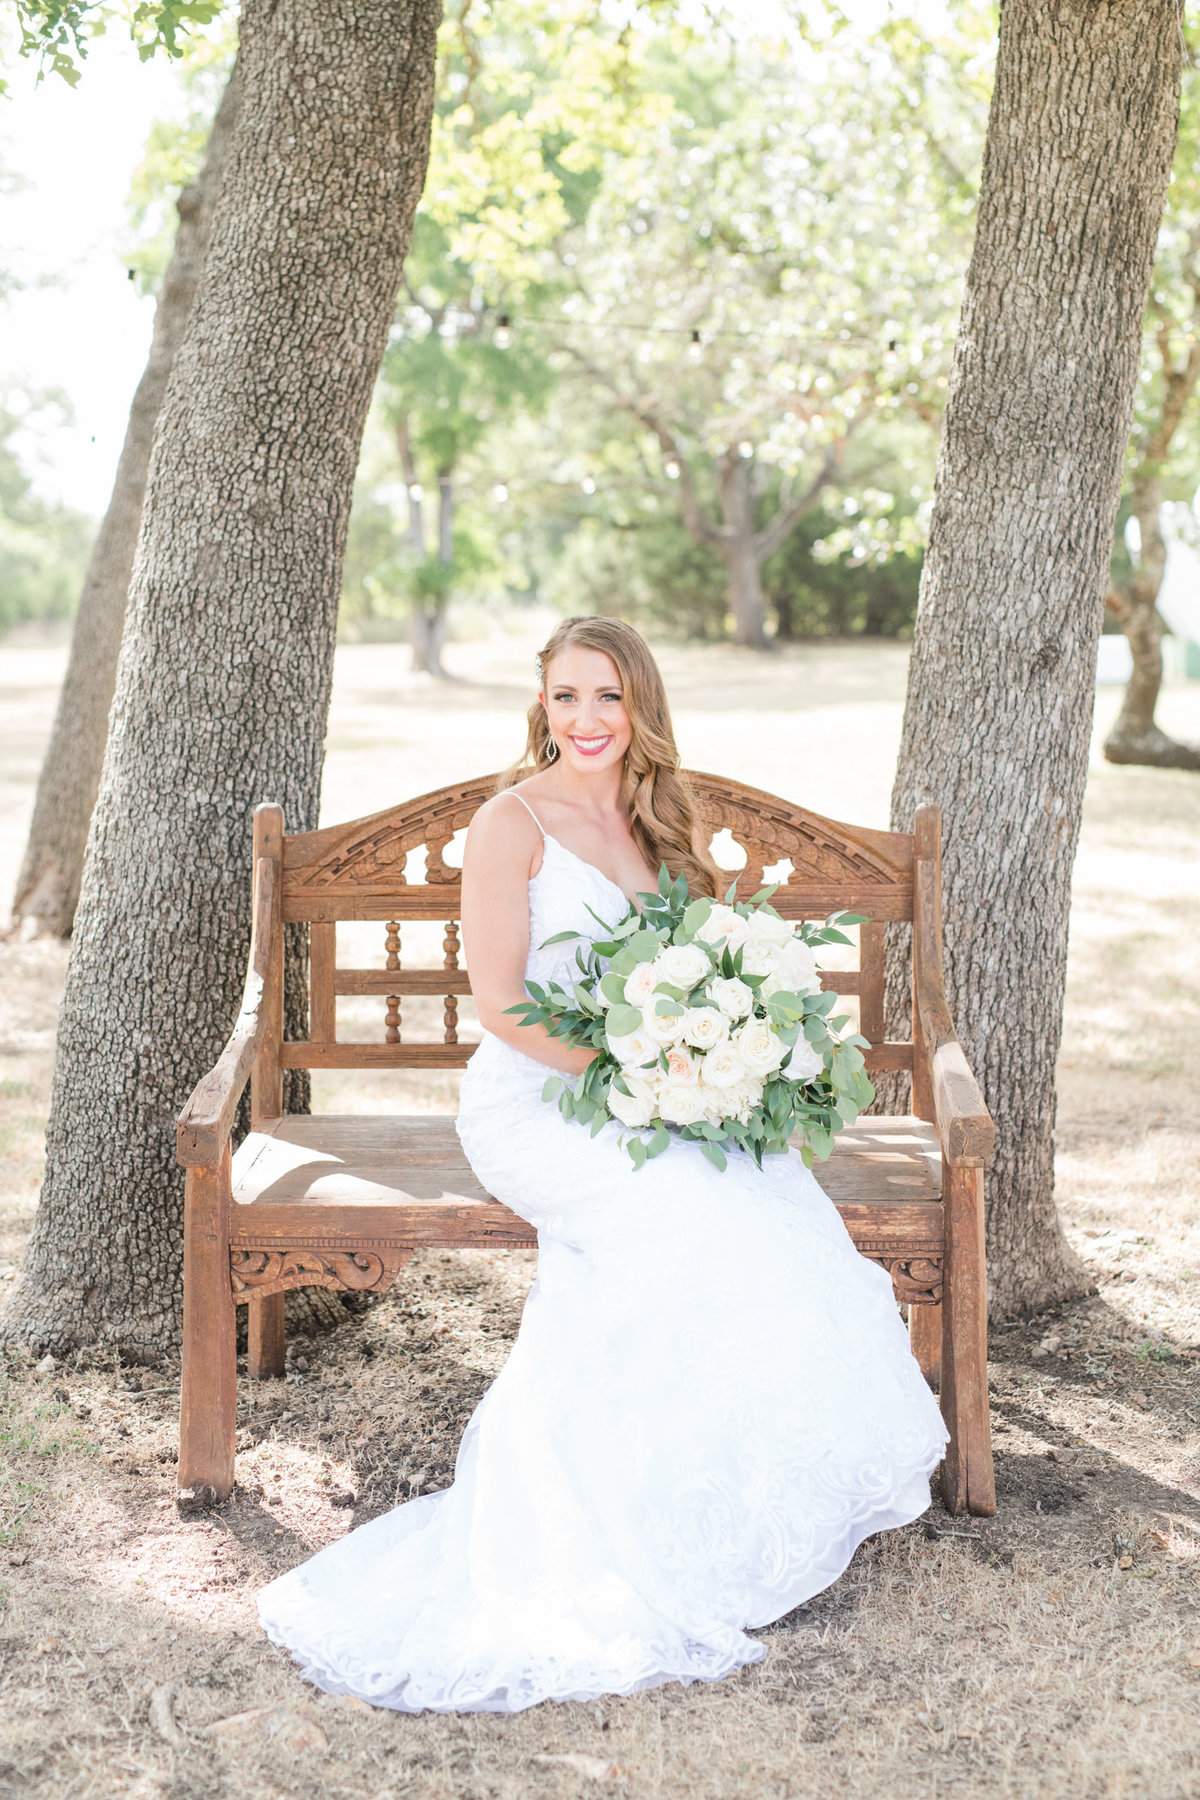 Bride sits on Bench for bridal portraits at Kindred Oaks holding a white and green bouquet